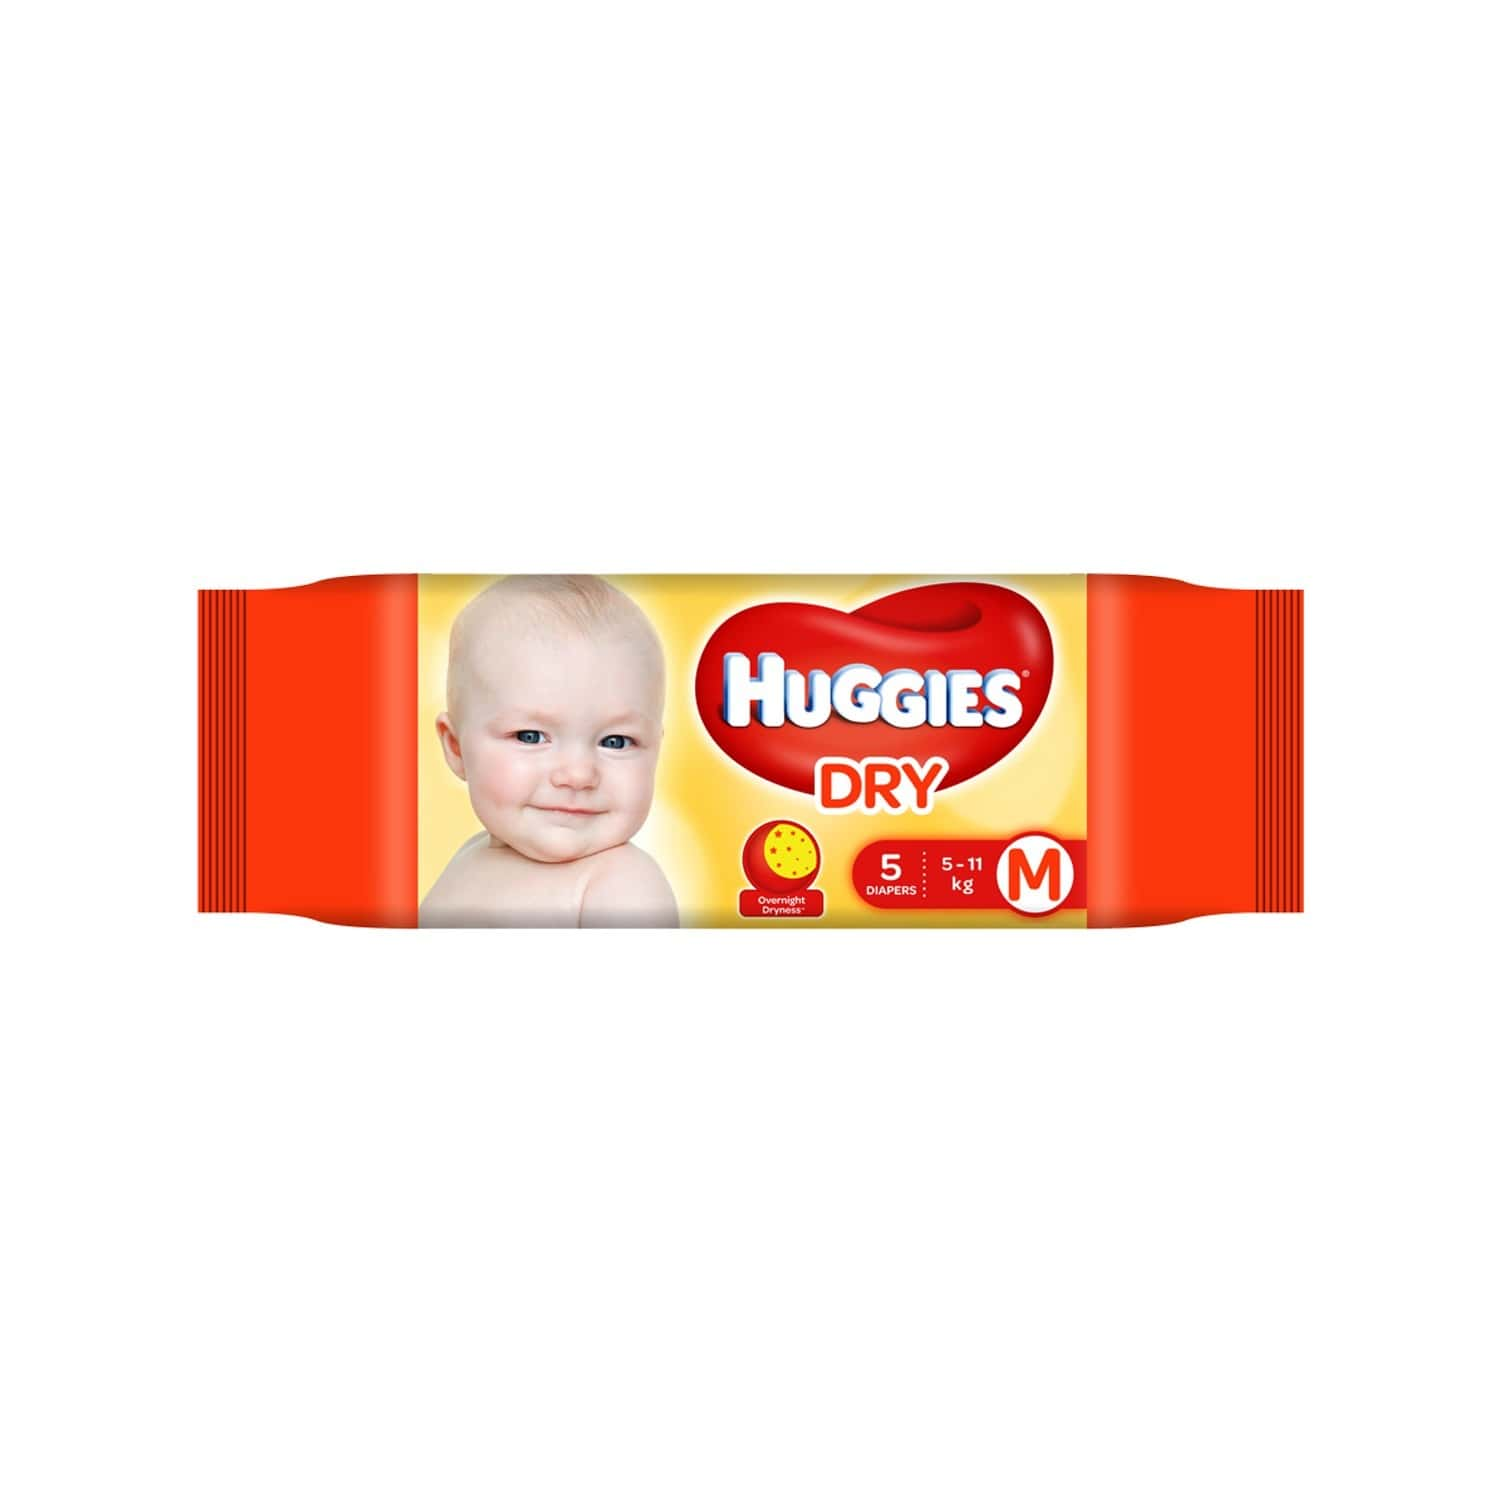 Huggies Dry Tape Diapers ( Medium Size) - 5 Count